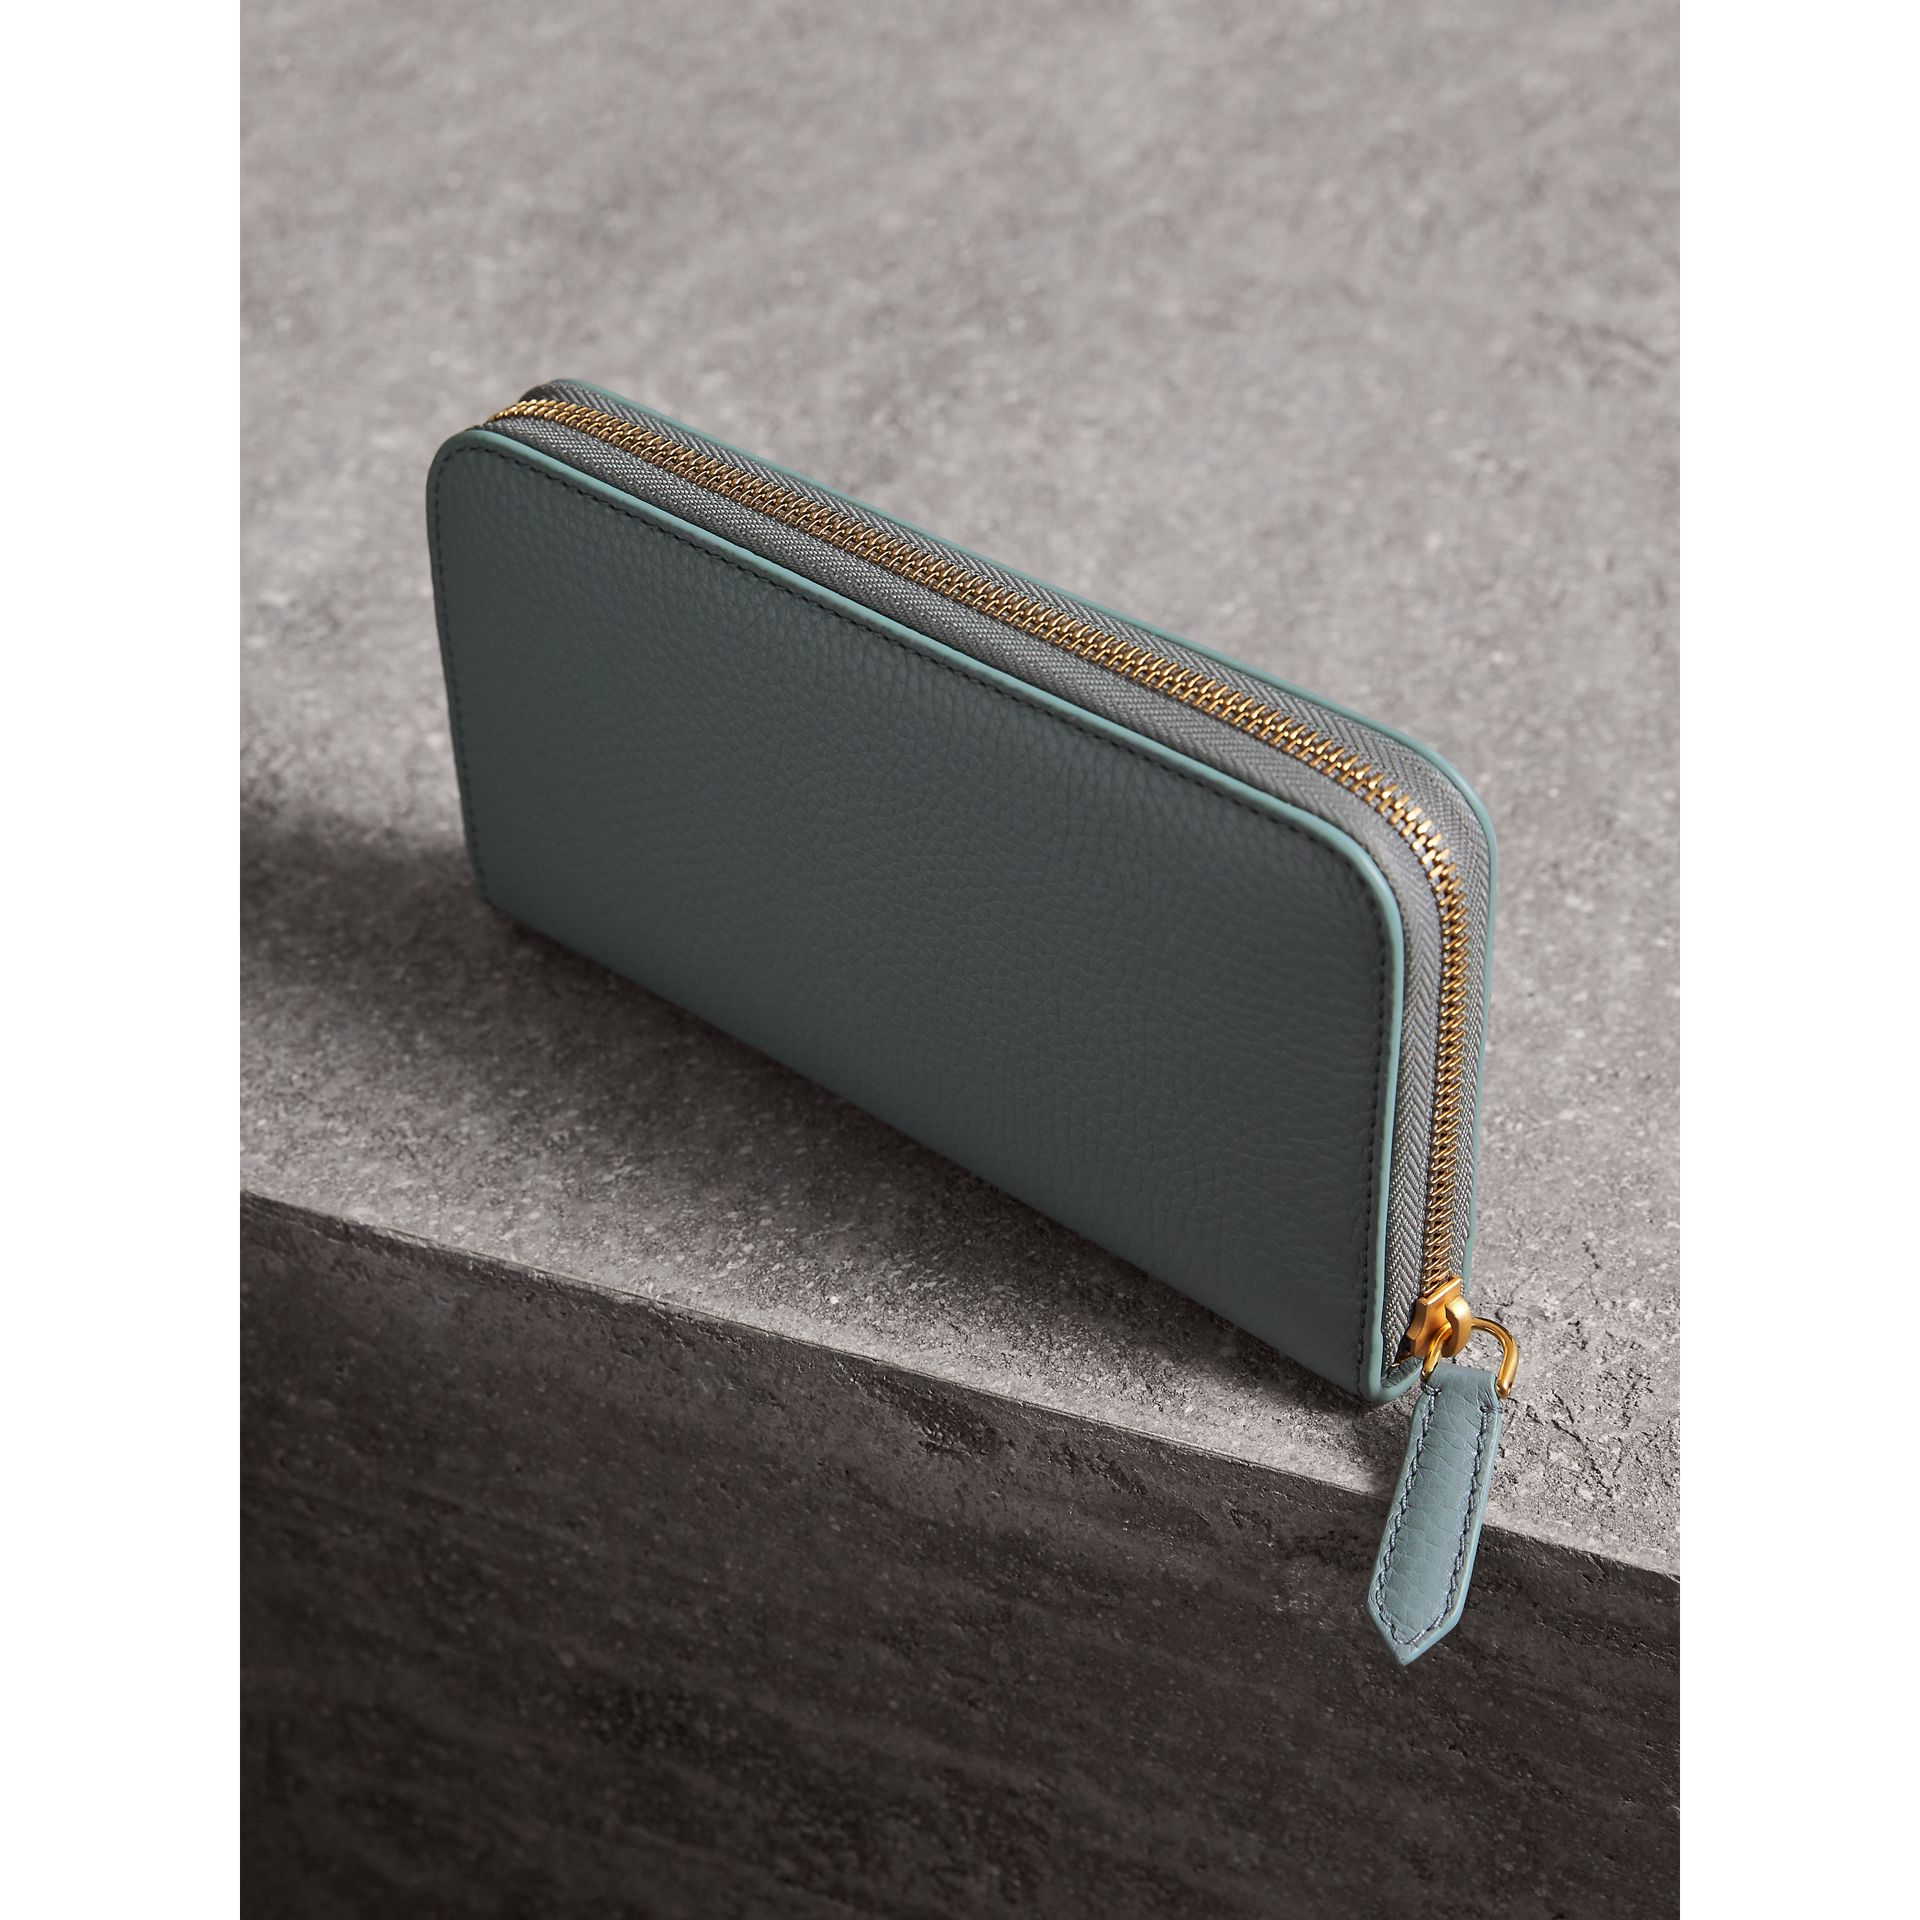 Embossed Leather Ziparound Wallet in Dusty Teal Blue - Women | Burberry - gallery image 2